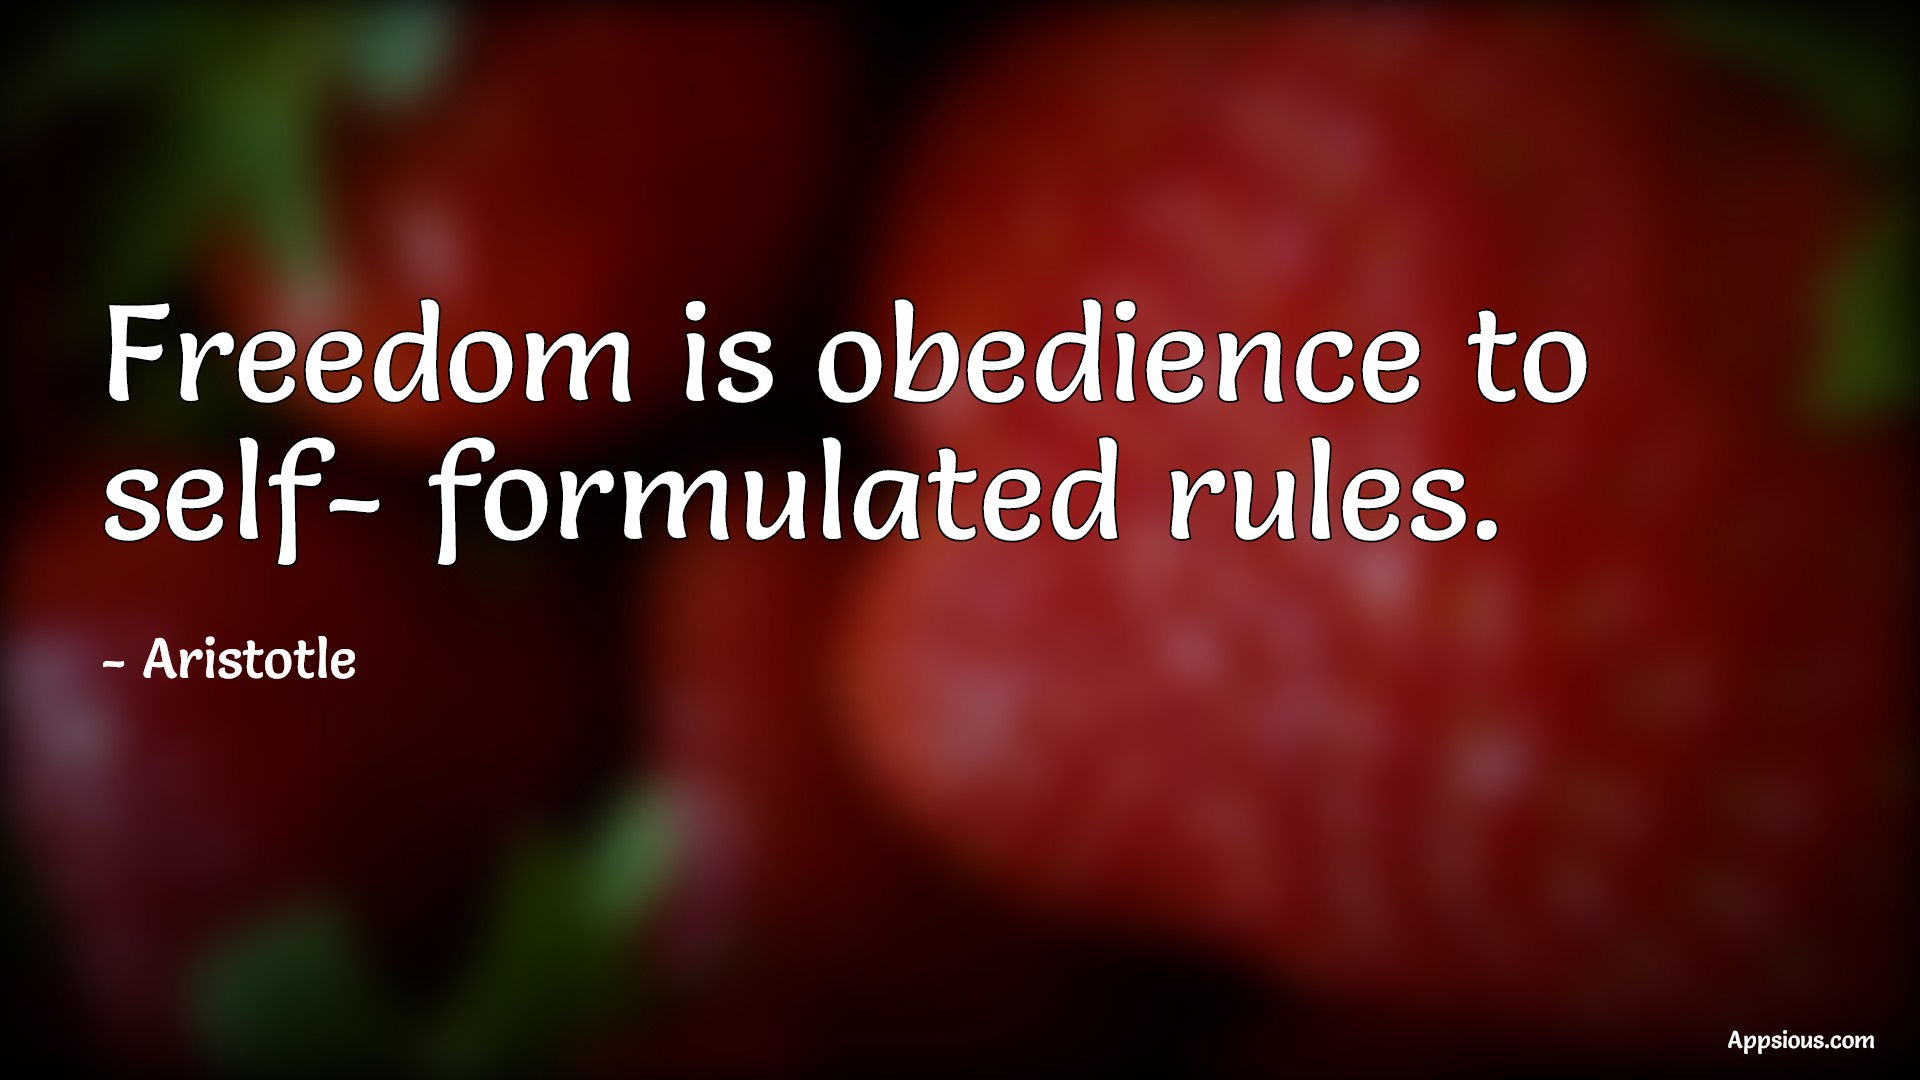 Freedom is obedience to self- formulated rules.